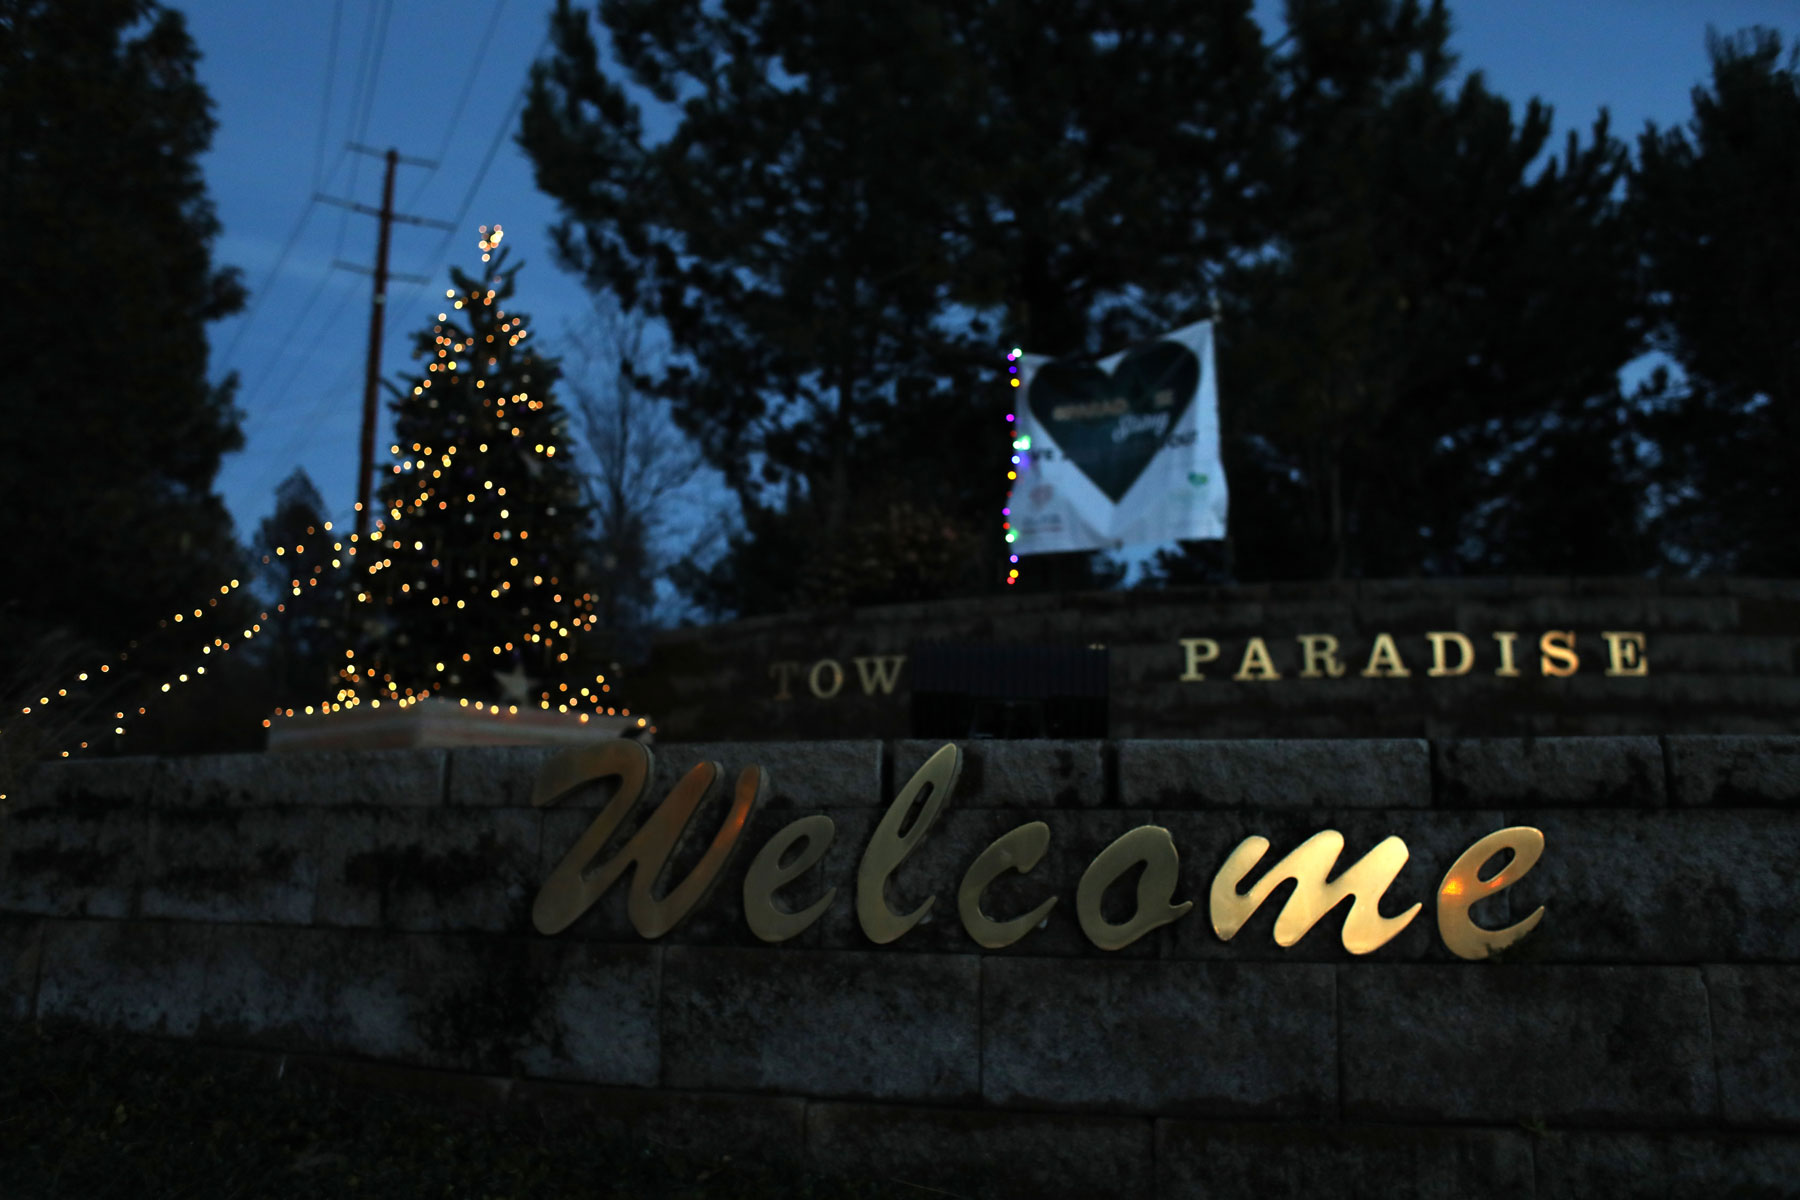 Paradise CA fire relief - Town of Paradise sign